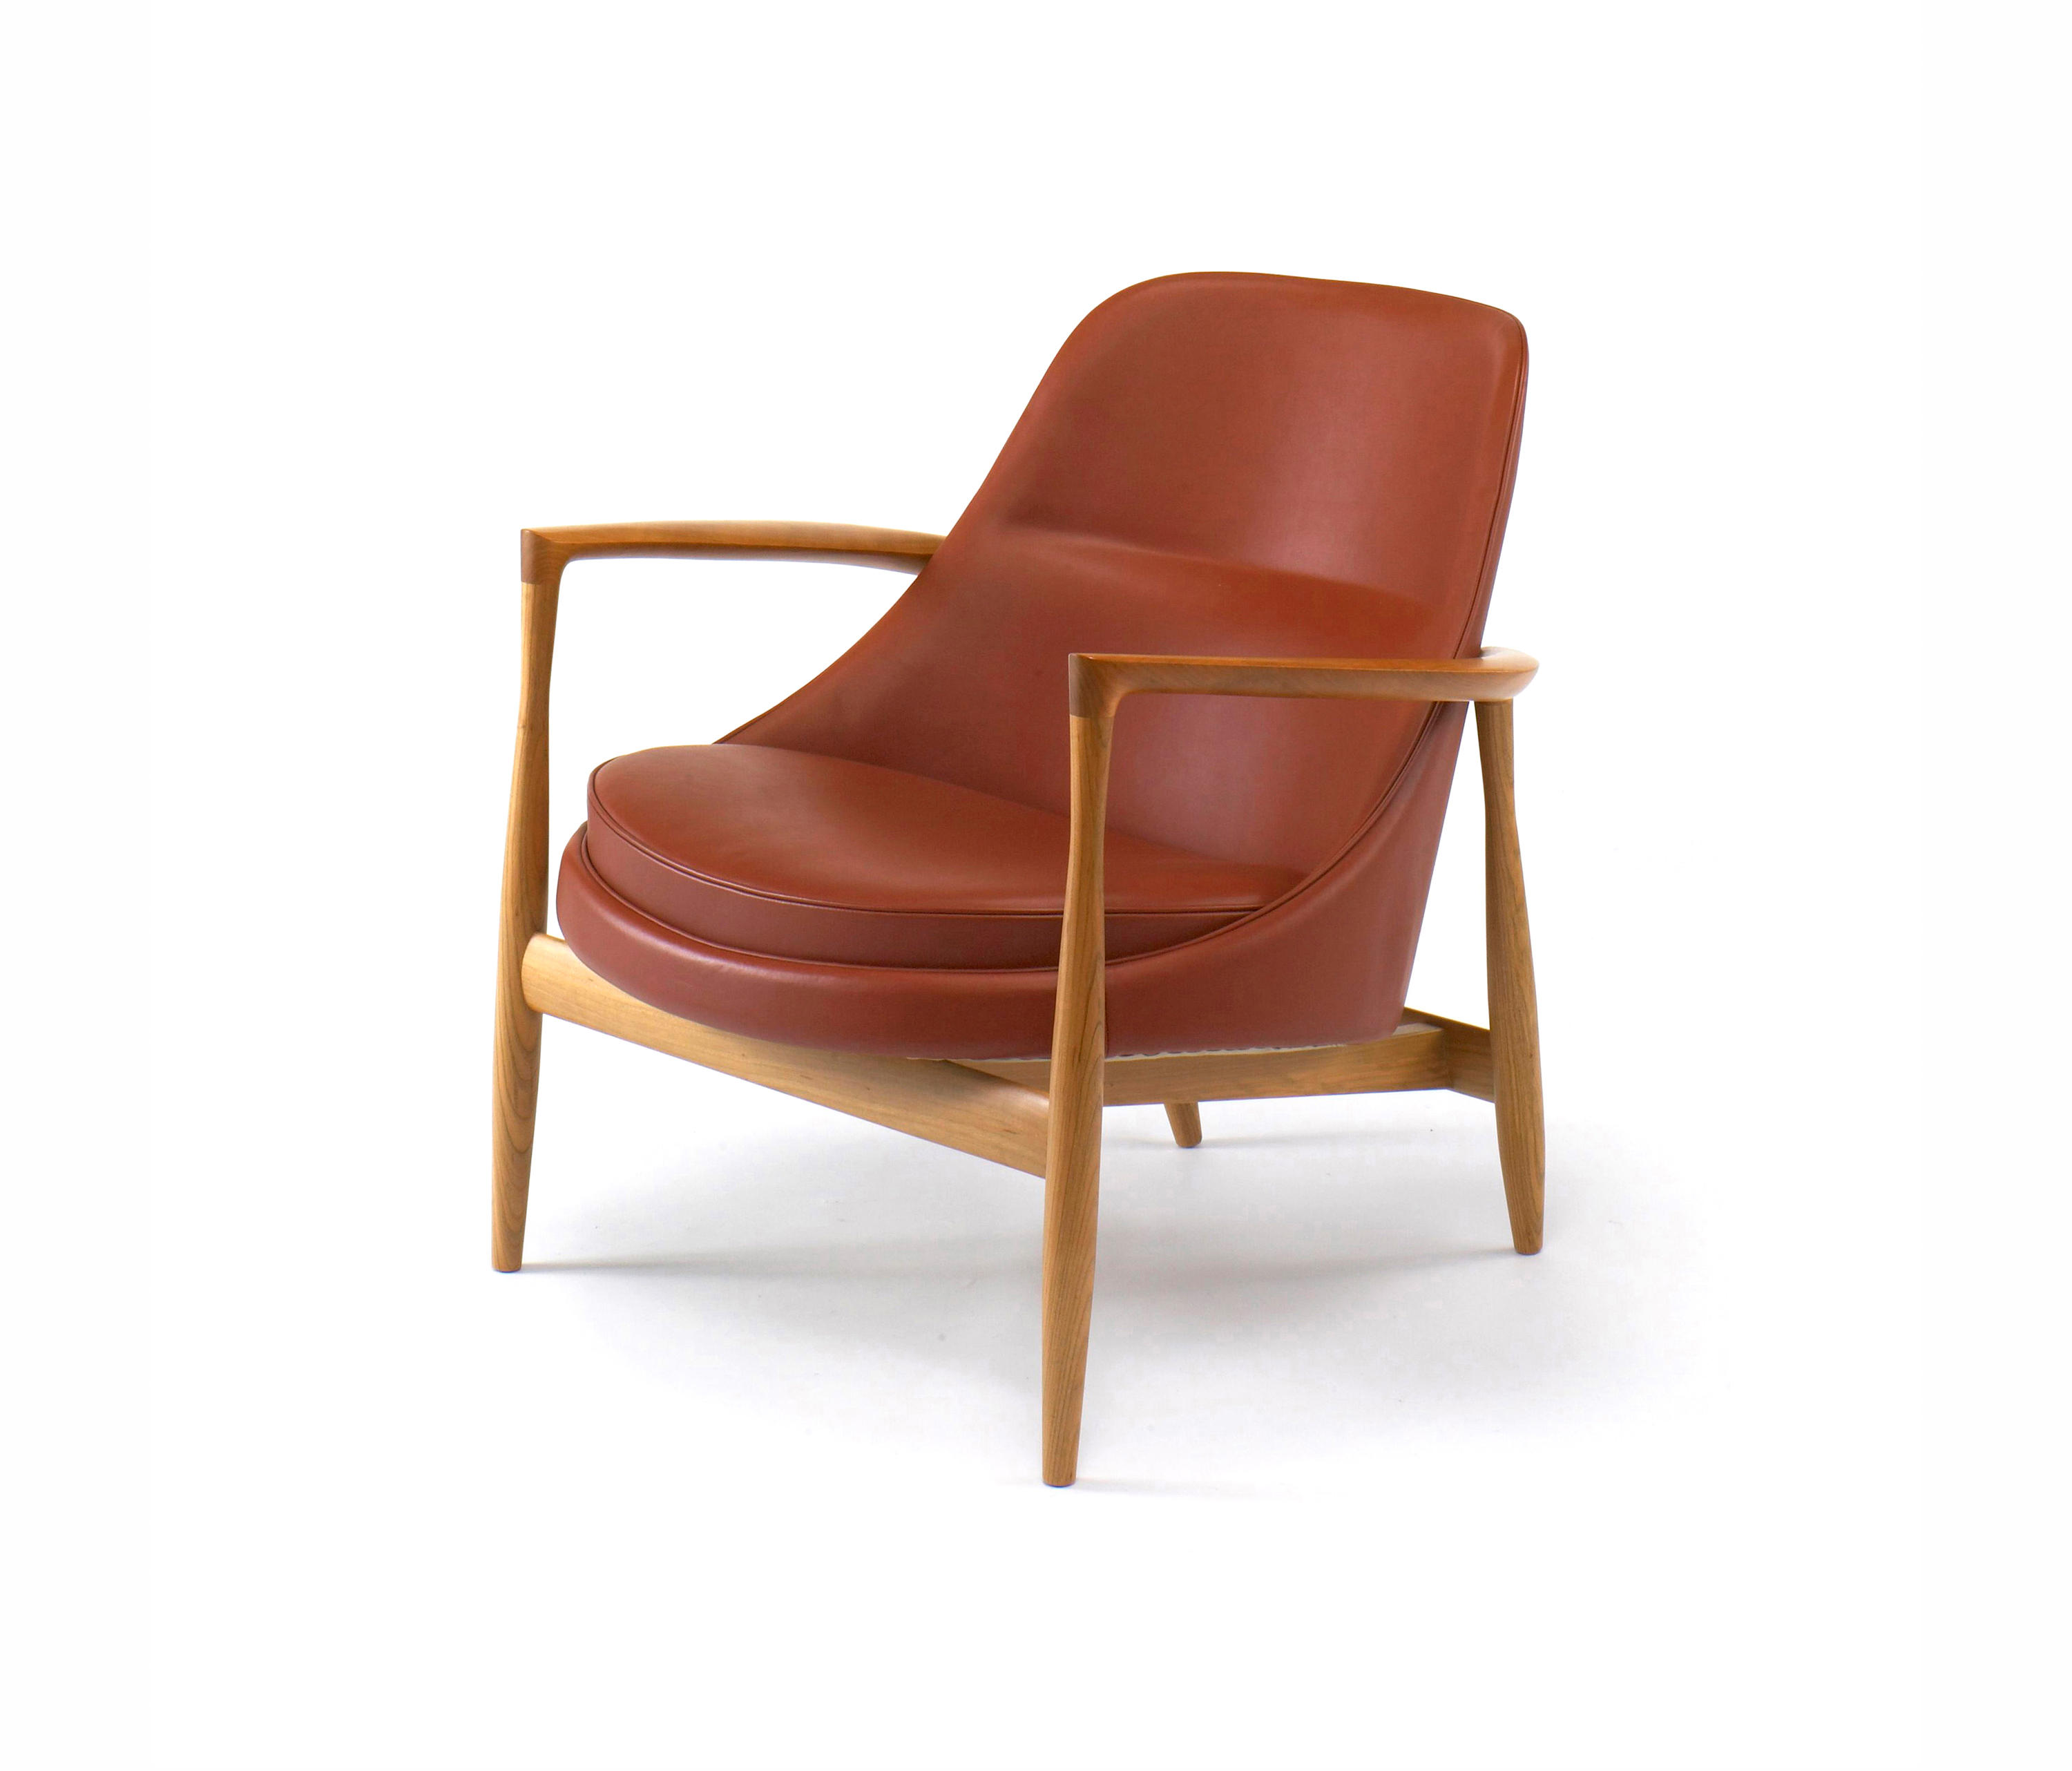 IL 01 EASY CHAIR Lounge chairs from Kitani Japan Inc